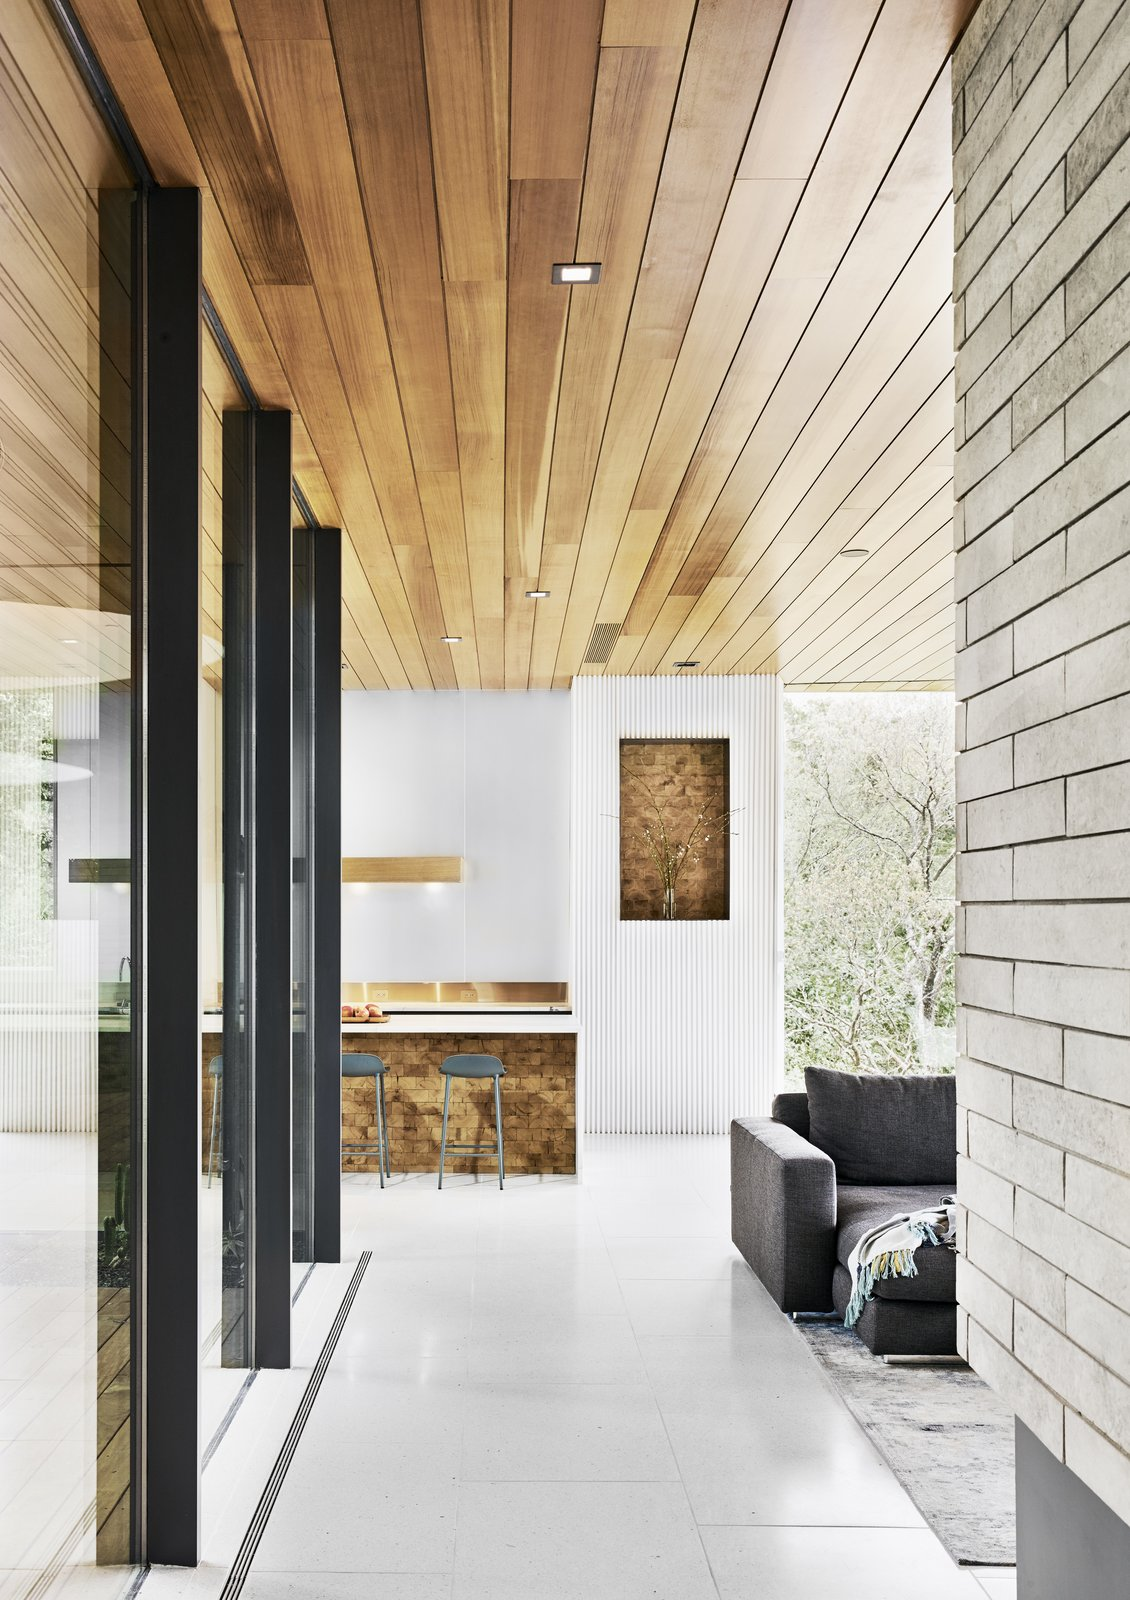 both-the-niche-and-the-base-of-the-kitchen-island-are-covered-in-reclaimed-end-grain-red-oak.jpg